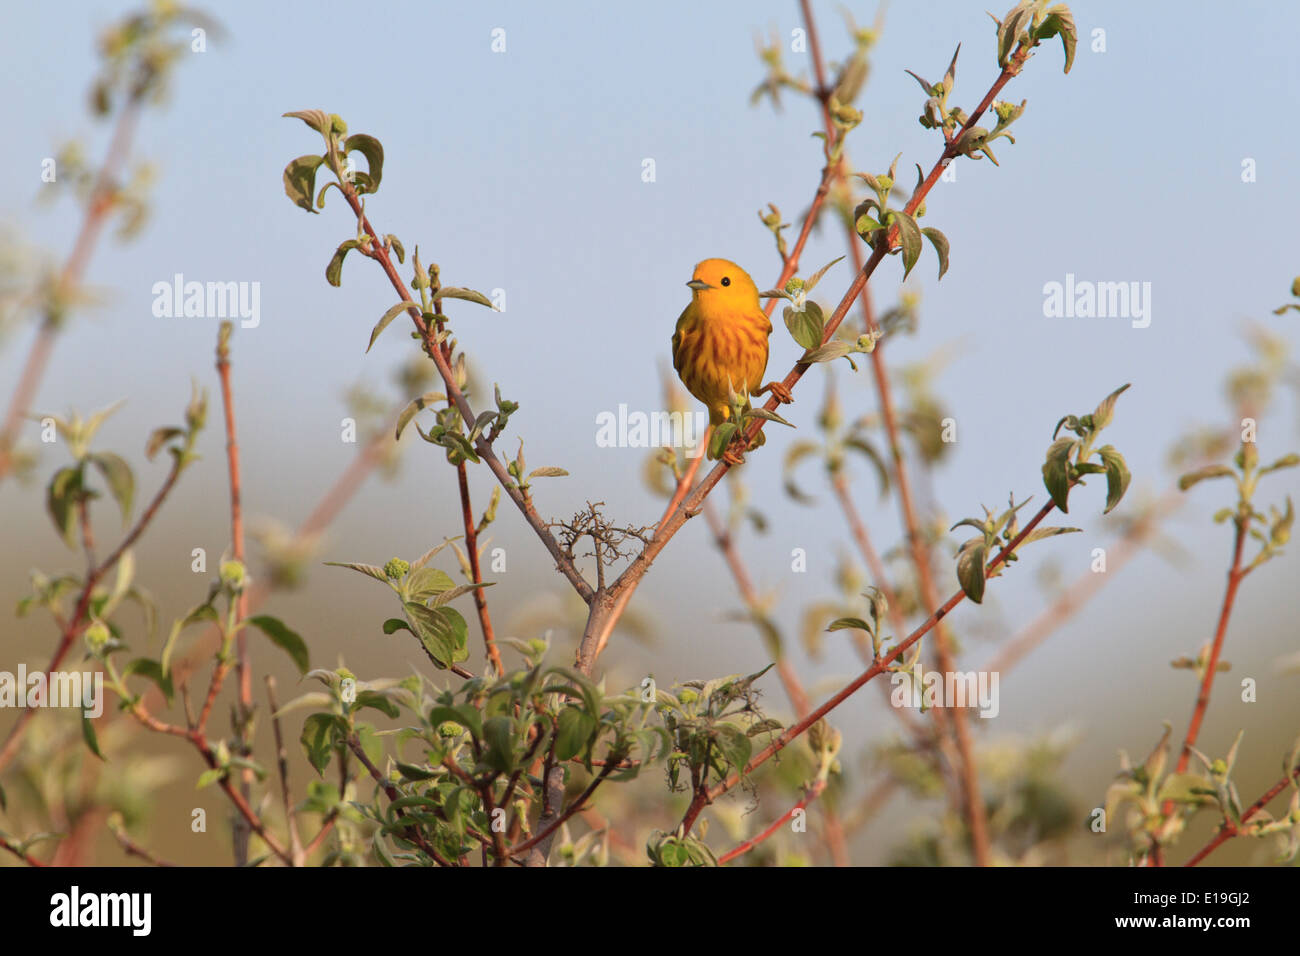 Male Yellow warbler (Setophaga petechia) on tree branch during the Spring migration, Magee Marsh, Ohio. - Stock Image